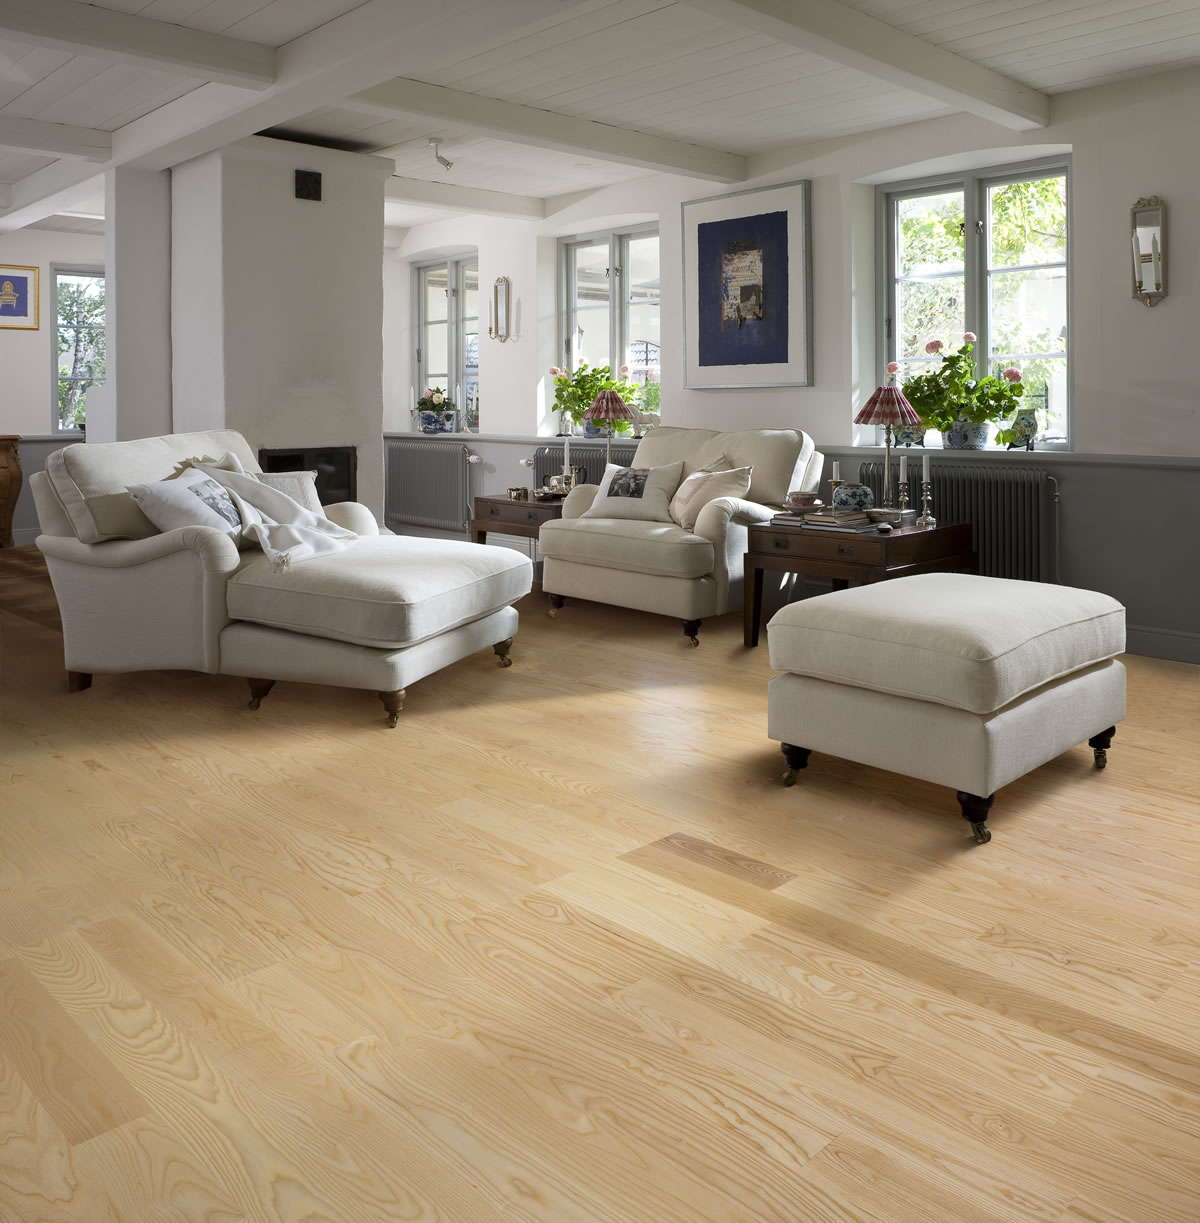 installation wheat enlarge artisan kahrs engineered floor at flooring click more oak save to wood